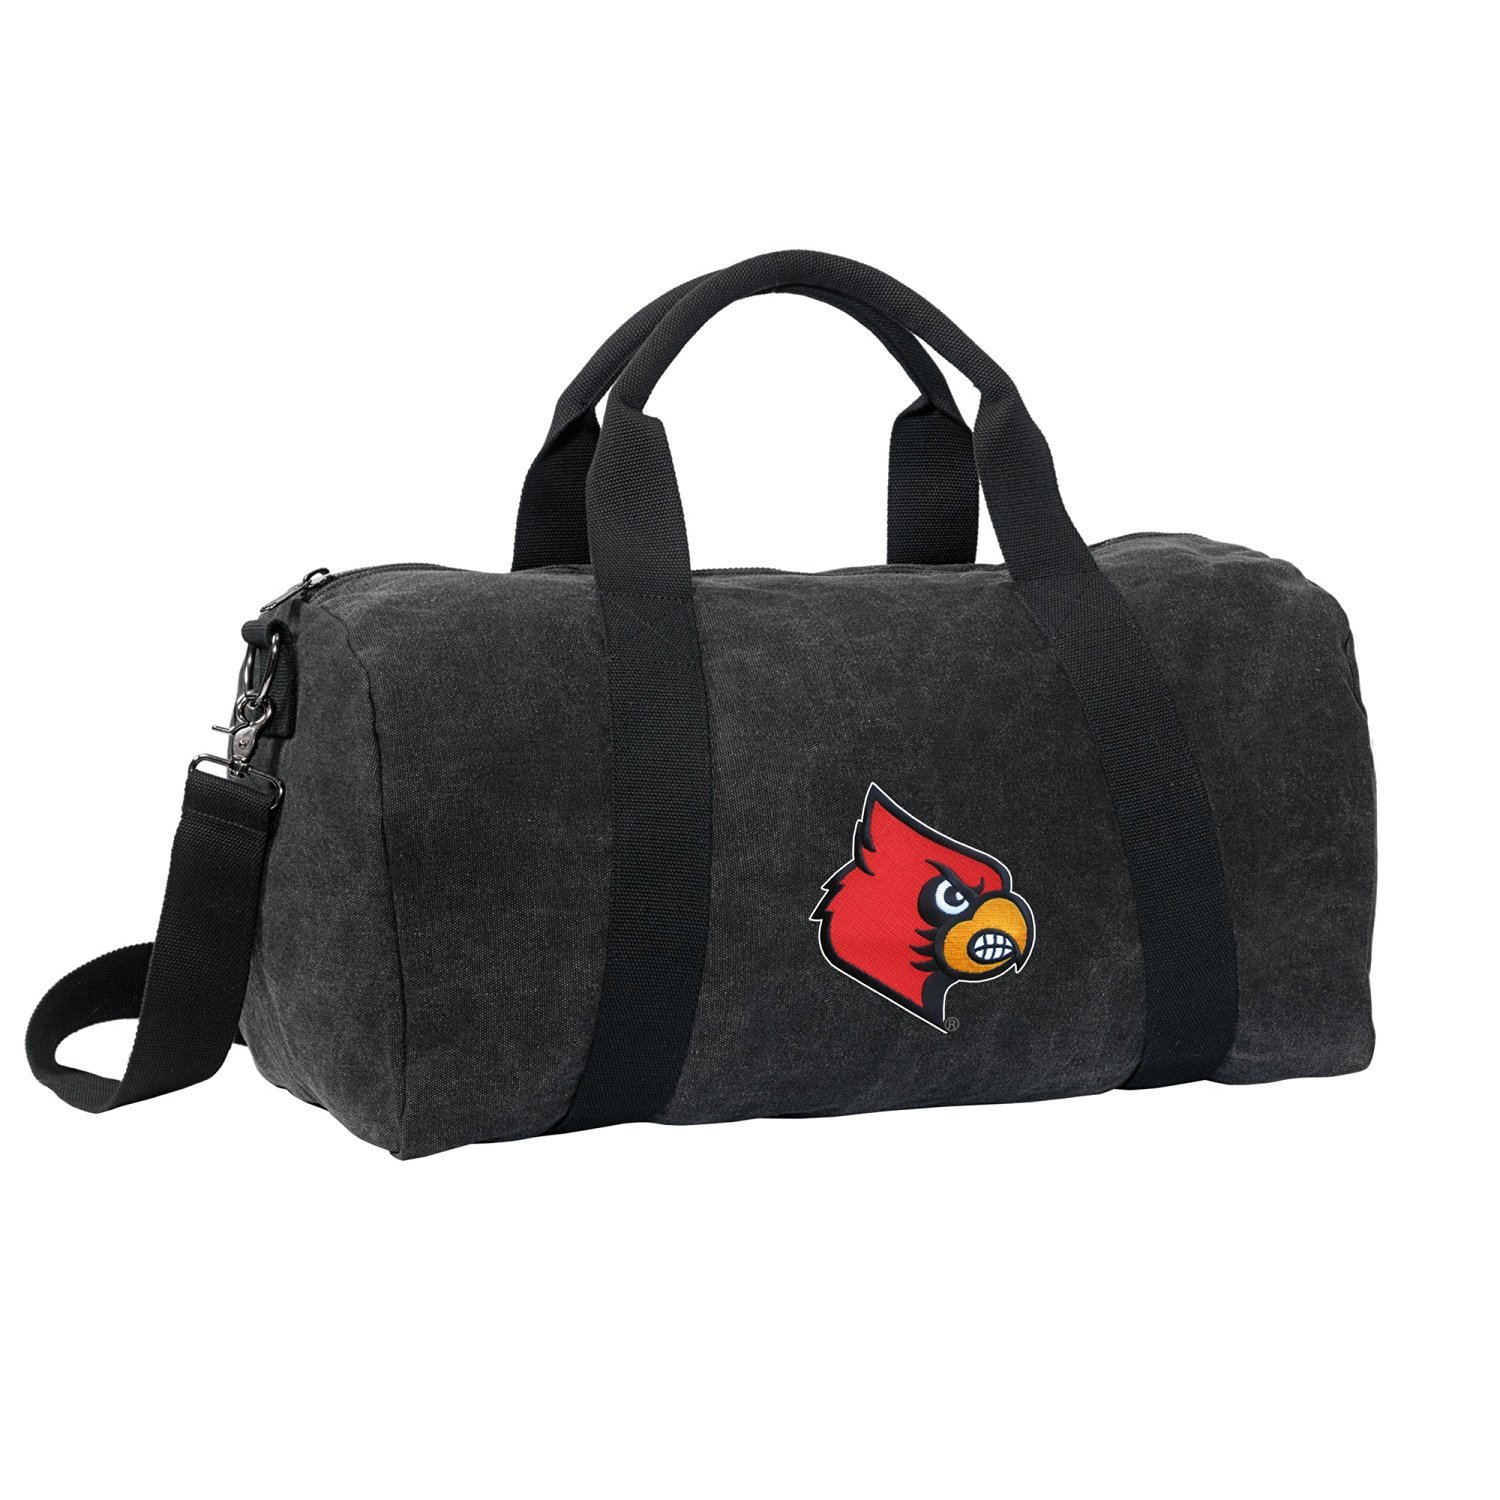 University of Louisville Duffel Bag or CANVAS Louisville Cardinals Suitcase  Luggage 501223fc41891